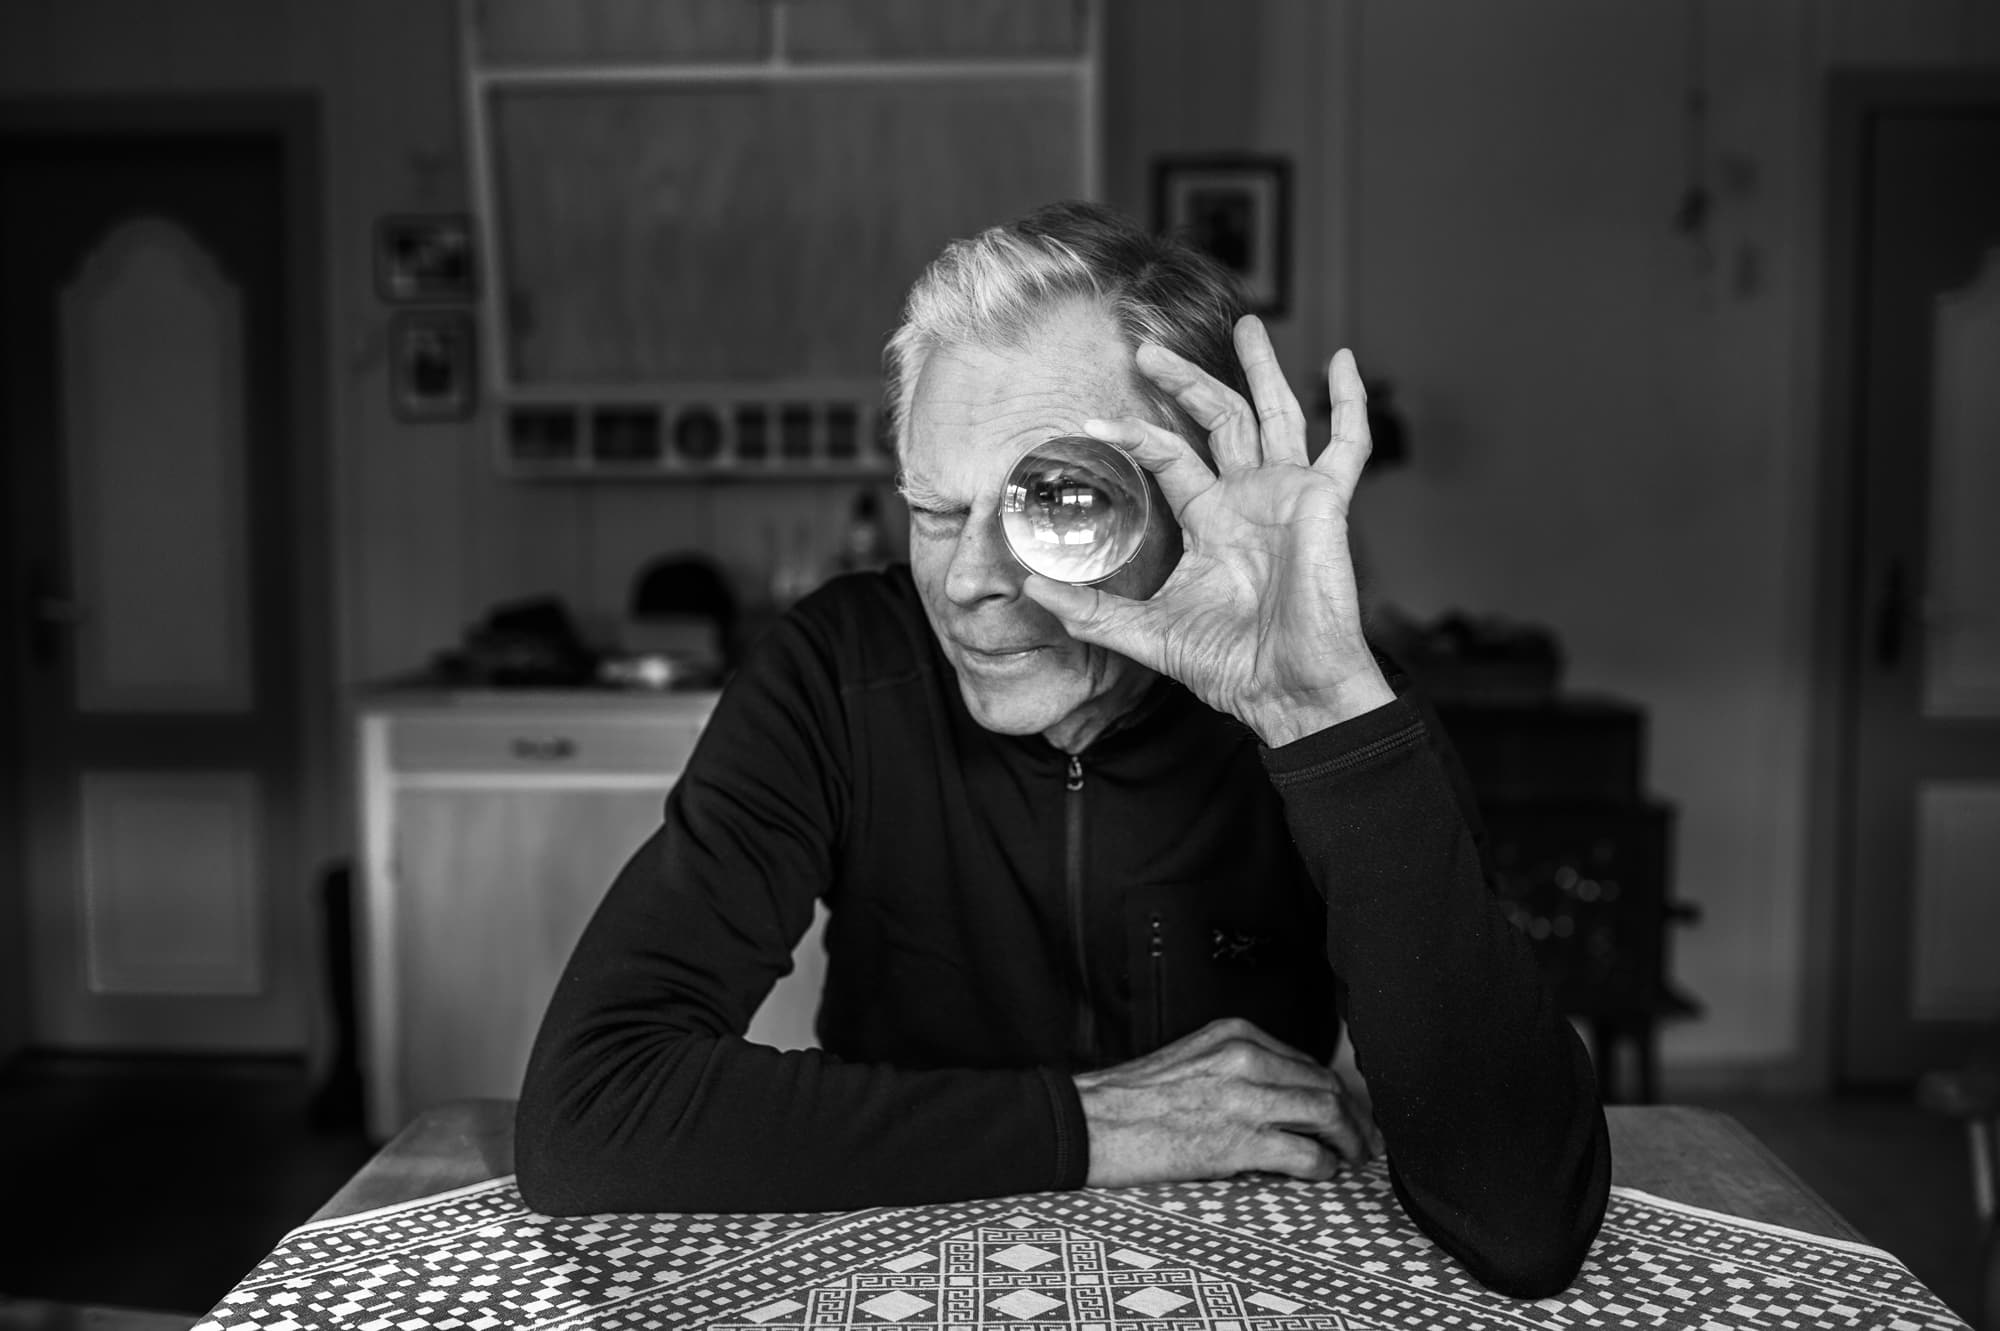 Portrait of Knut Bry, photographer, in his house on March 9th, 2015.